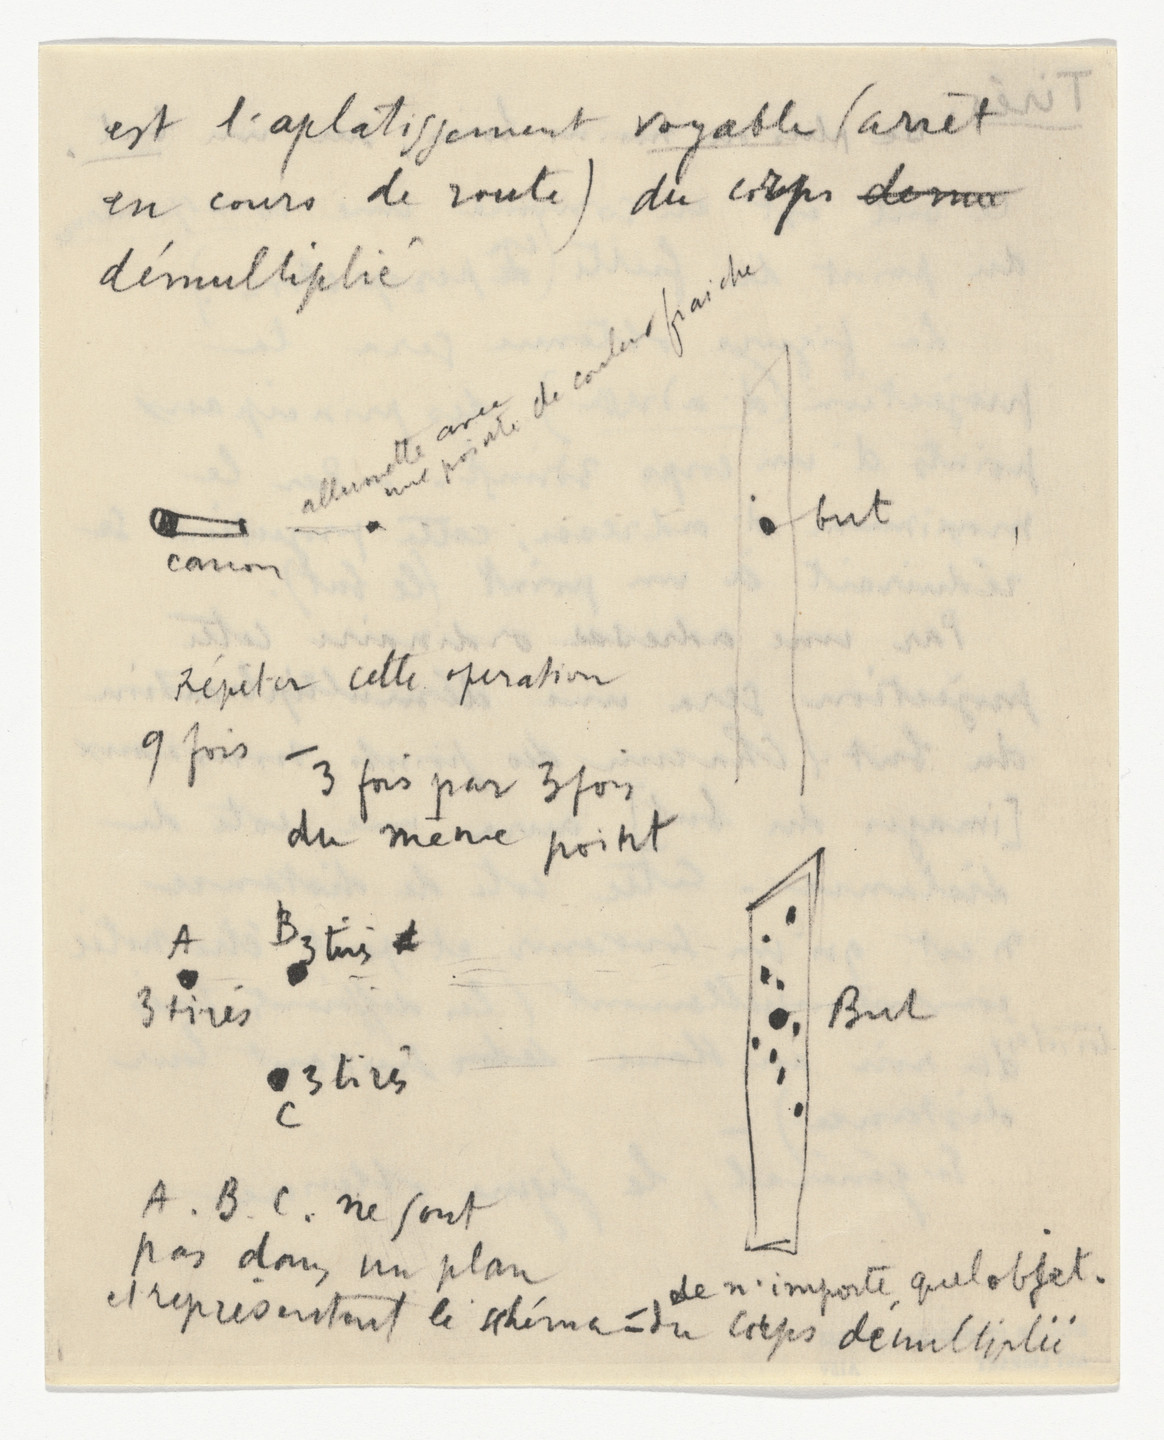 Marcel Duchamp. Untitled from The Bride Stripped Bare by Her Bachelors, Even (The Green Box) (La mariée mise à nu par ses célibataires, même [Boîte verte]). 1934